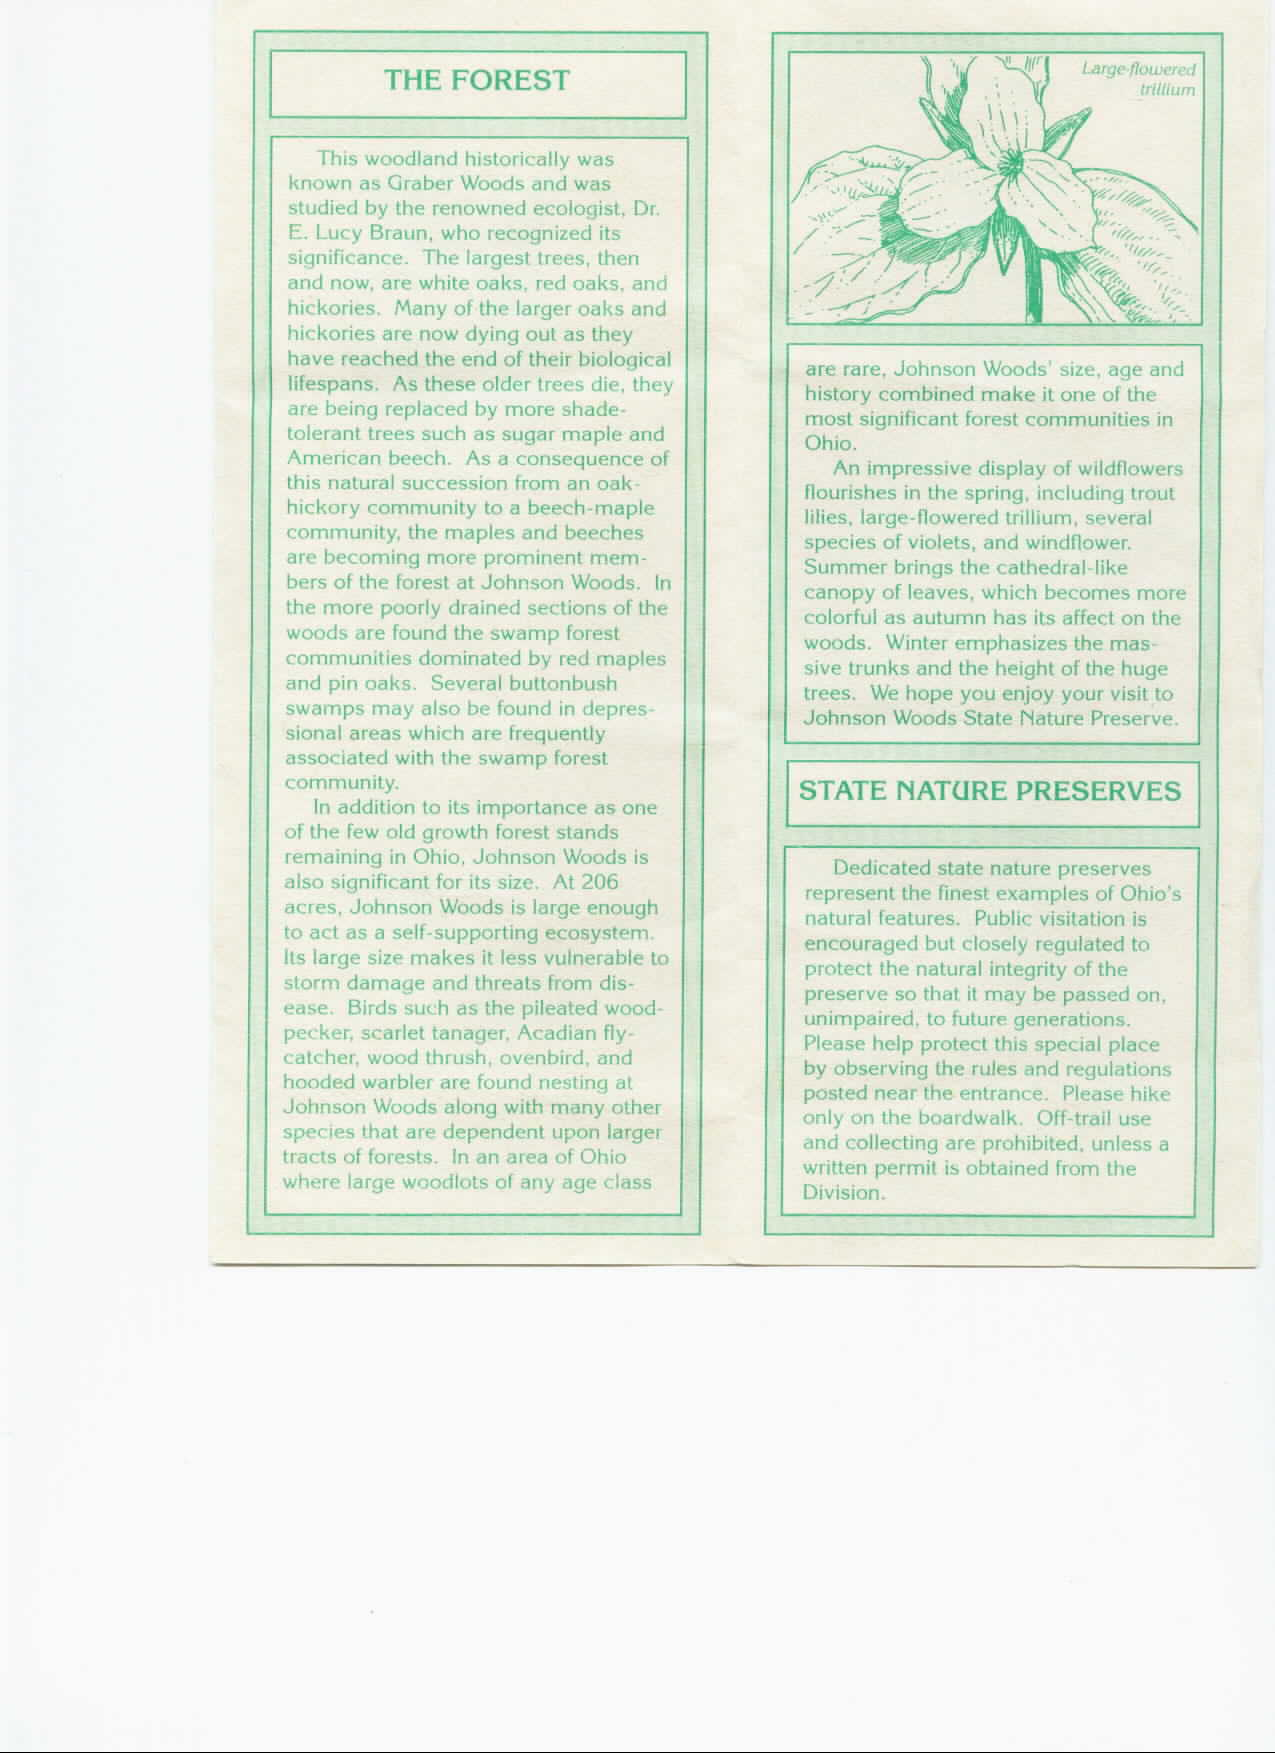 Johnson Woods Information Brochure Part 3